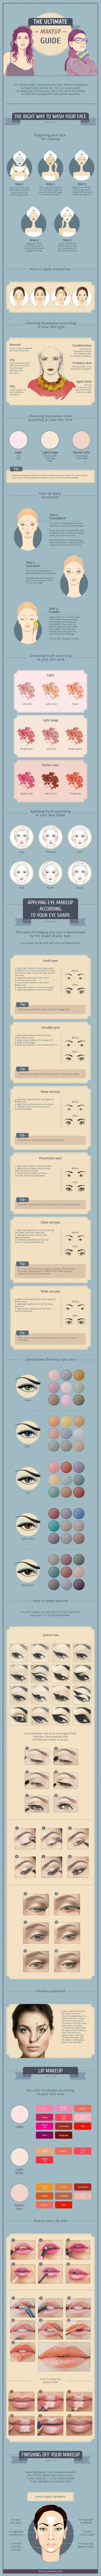 Step-by-step instructions to help you attain an absolutely flawless look. Ultimate makeup guide